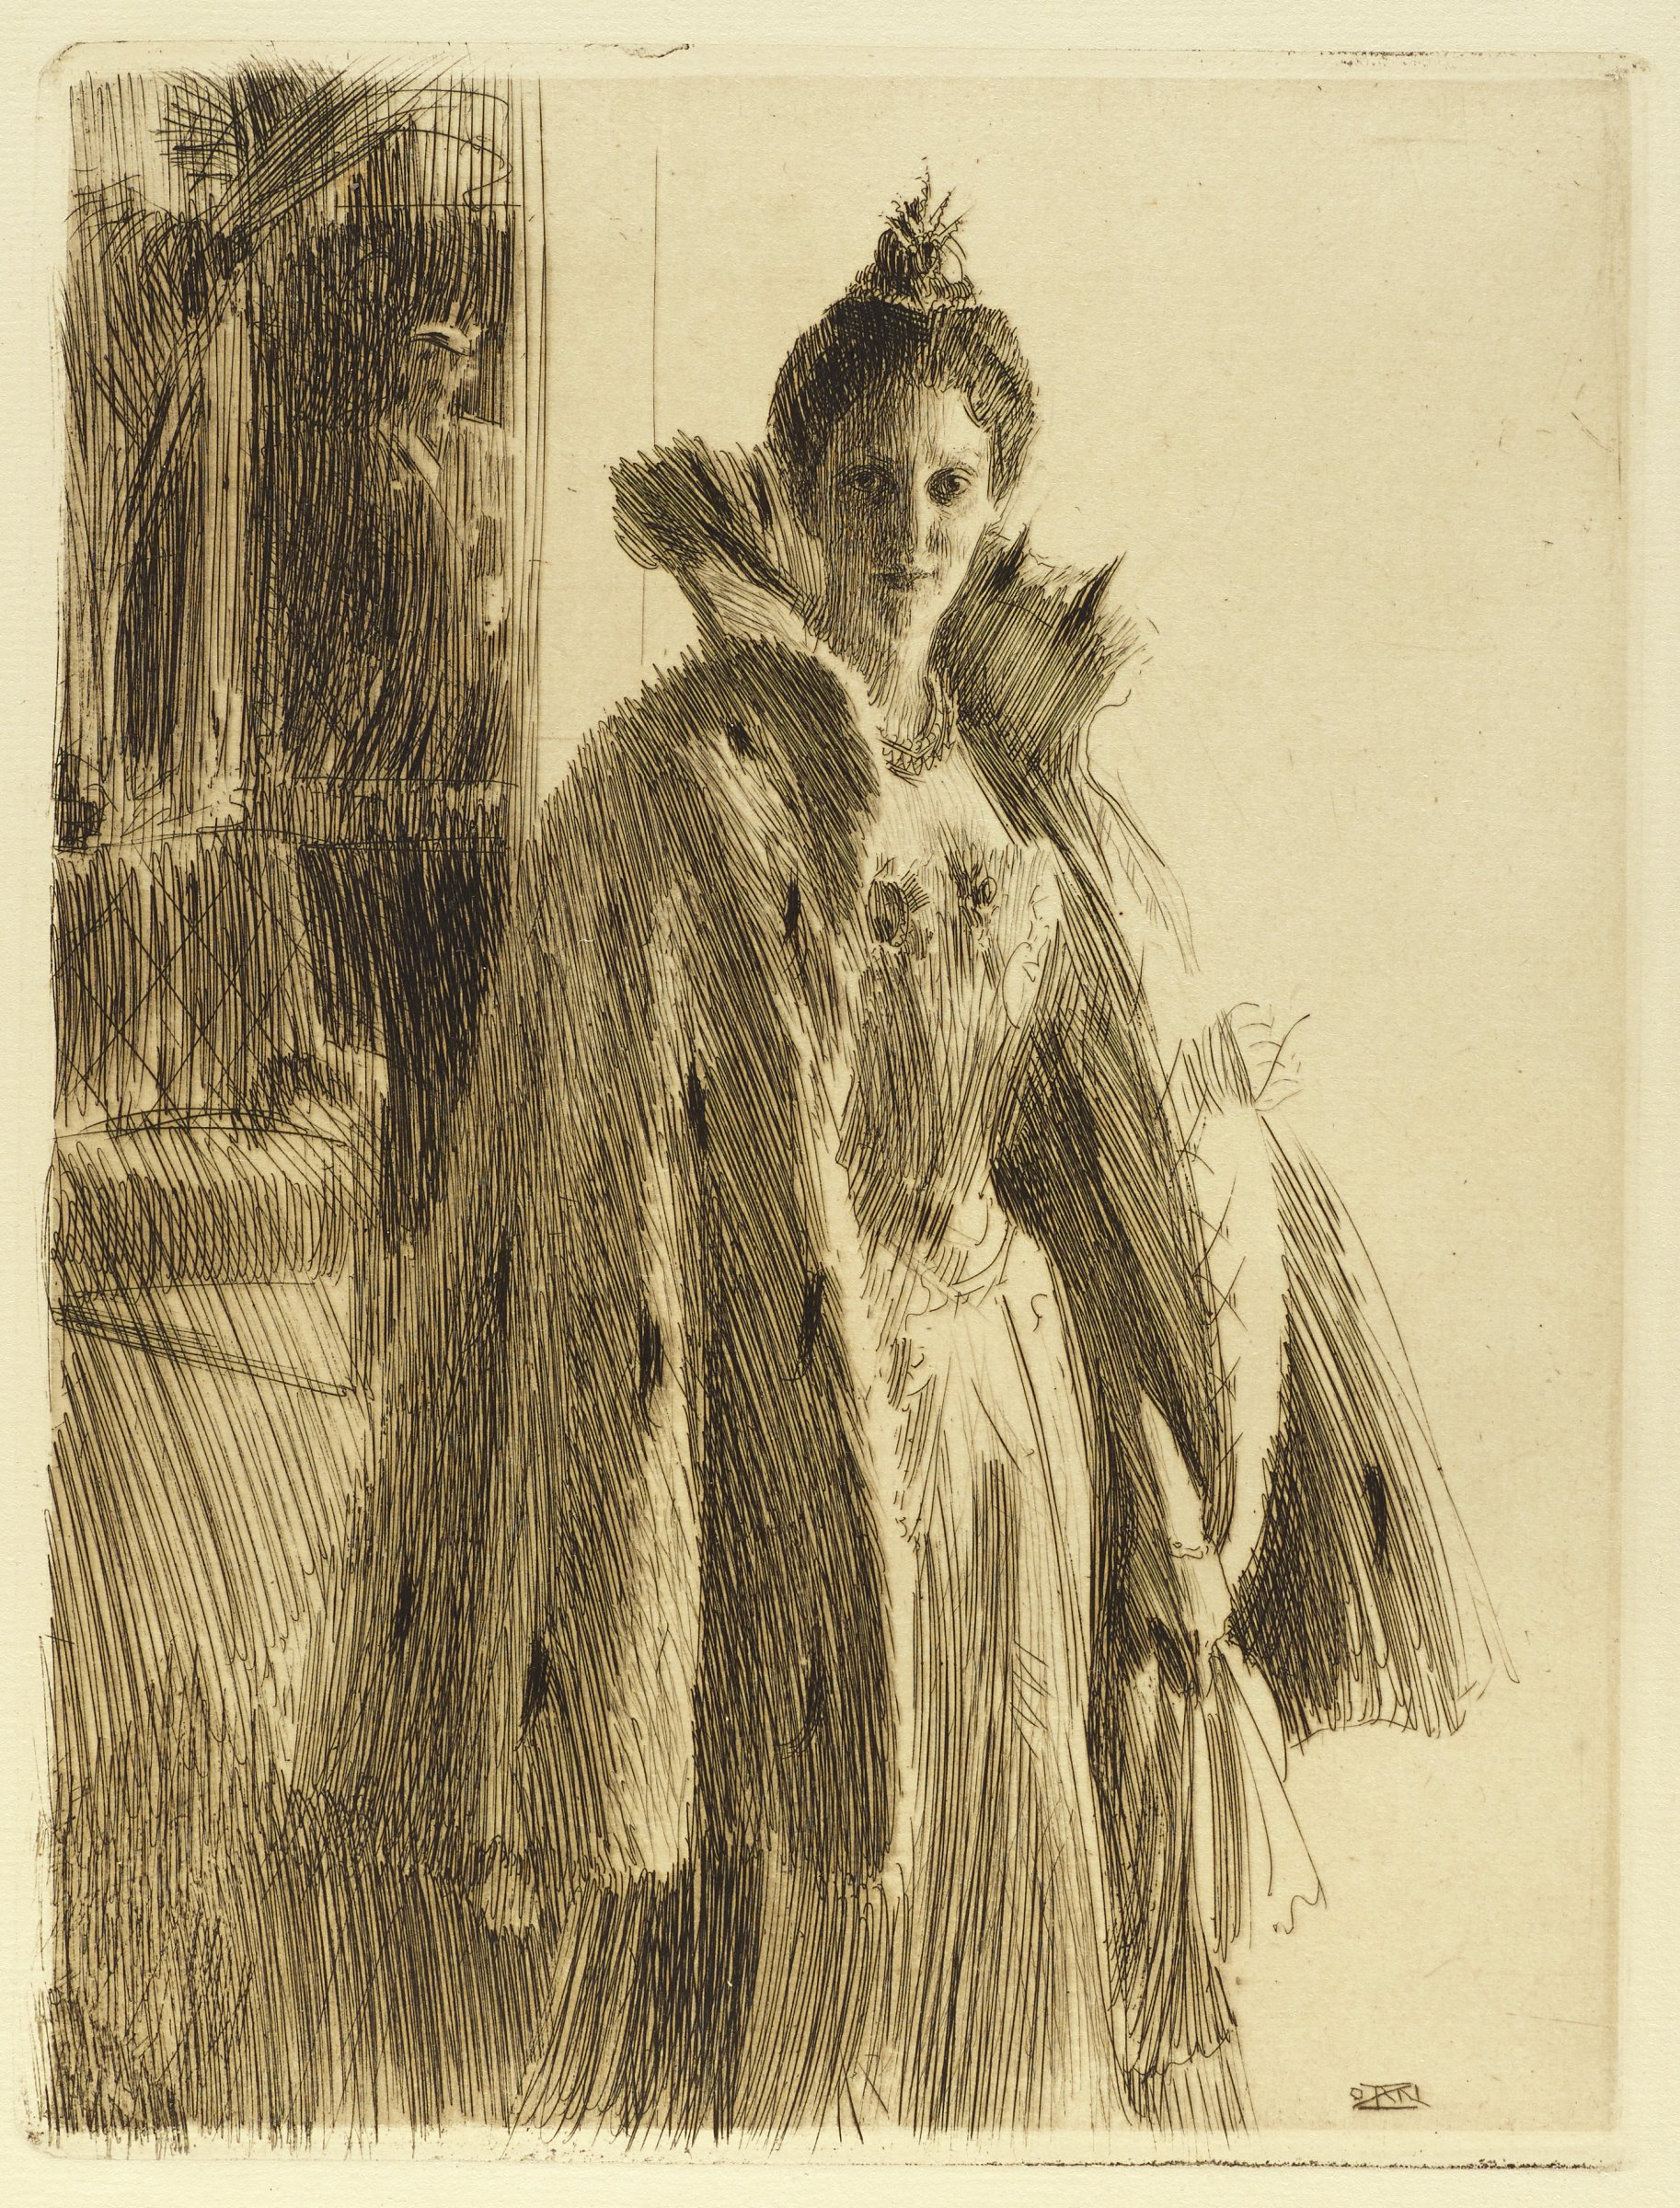 Portrait of Princess Ingeborg of Sweden. She stands upright, slightly angled to the right, looking out at the viewer. She wears a long gown with a high collared cape draped over her shoulers. Behind her to the left, a man in formal attire is seen.